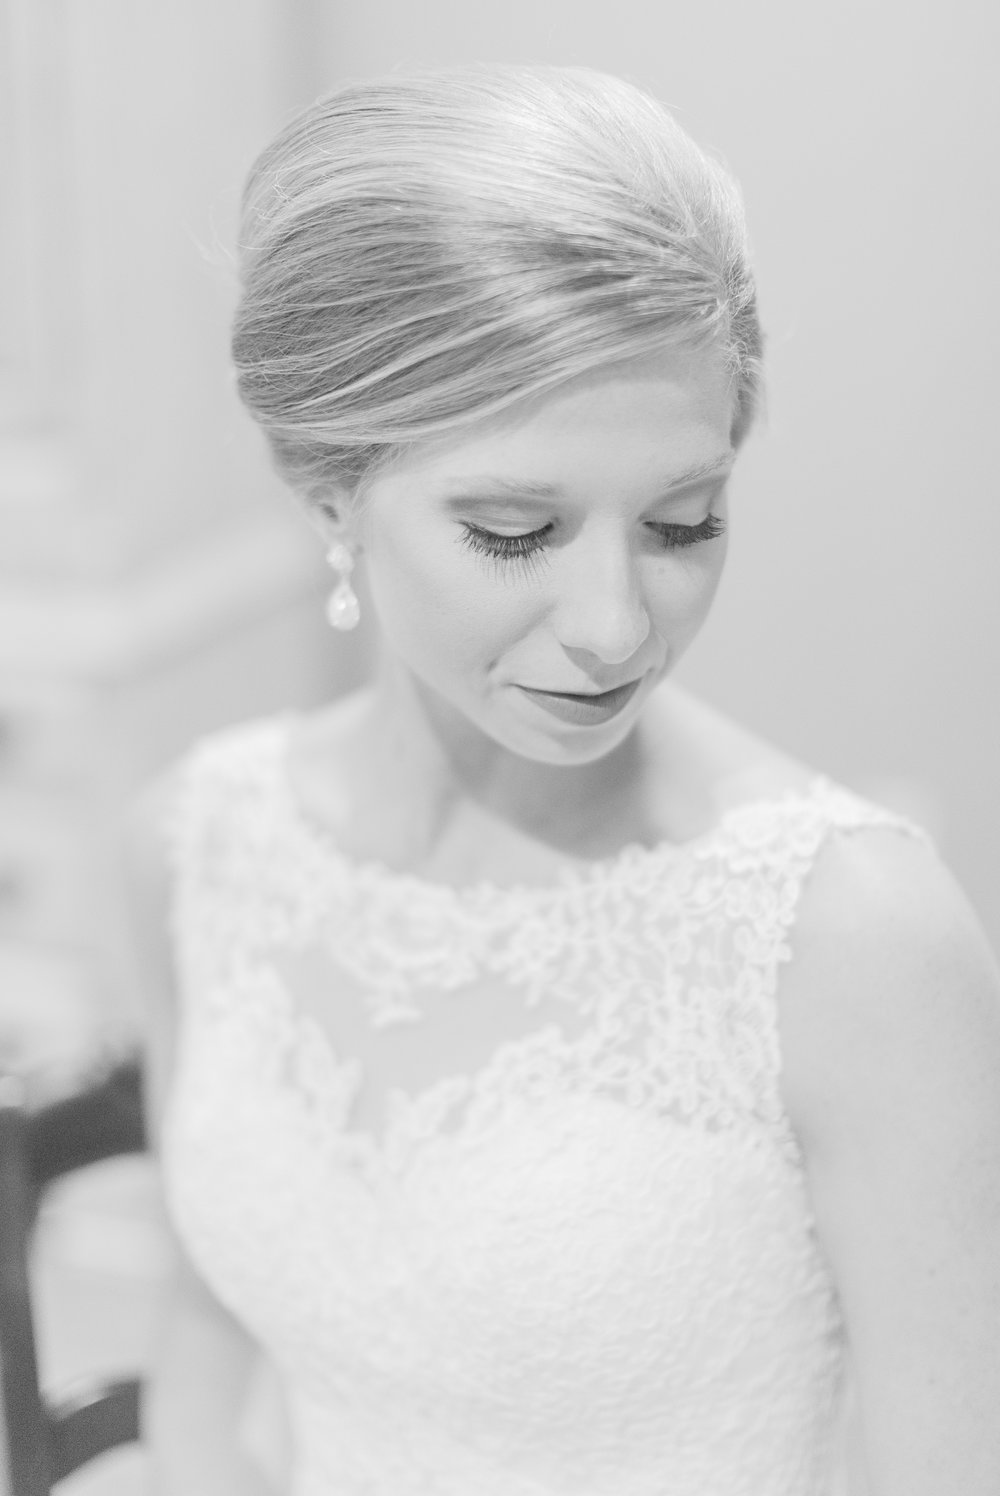 mississippi-church-wedding 13.jpg